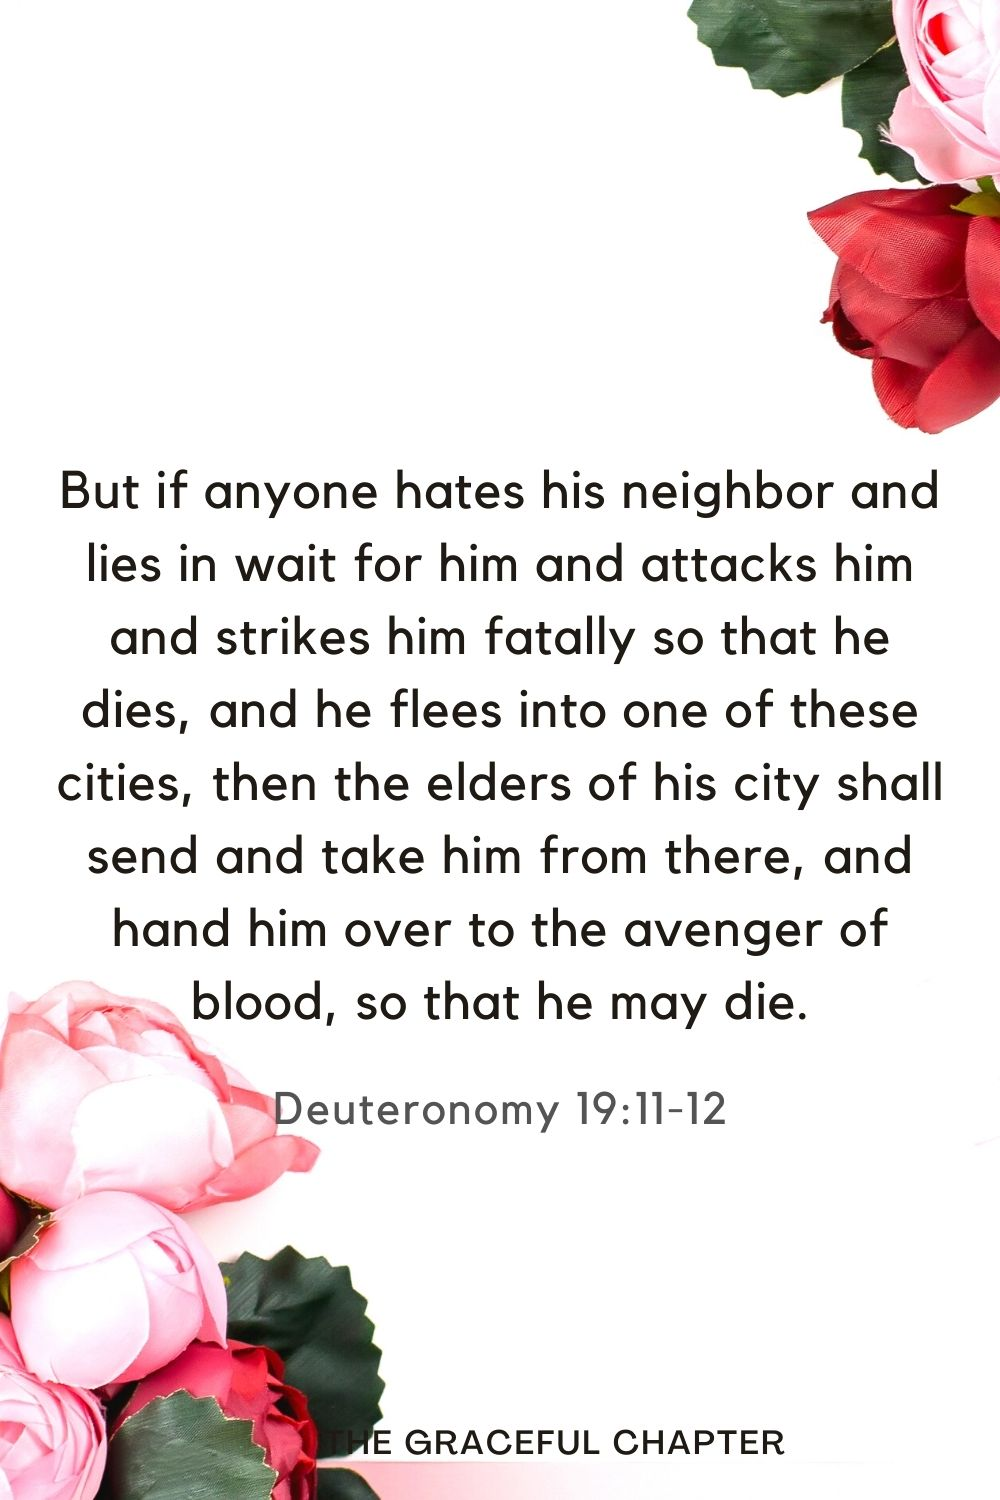 But if anyone hates his neighbor and lies in wait for him and attacks him and strikes him fatally so that he dies, and he flees into one of these cities,then the elders of his city shall send and take him from there, and hand him over to the avenger of blood, so that he may die. Deuteronomy 19:11-12